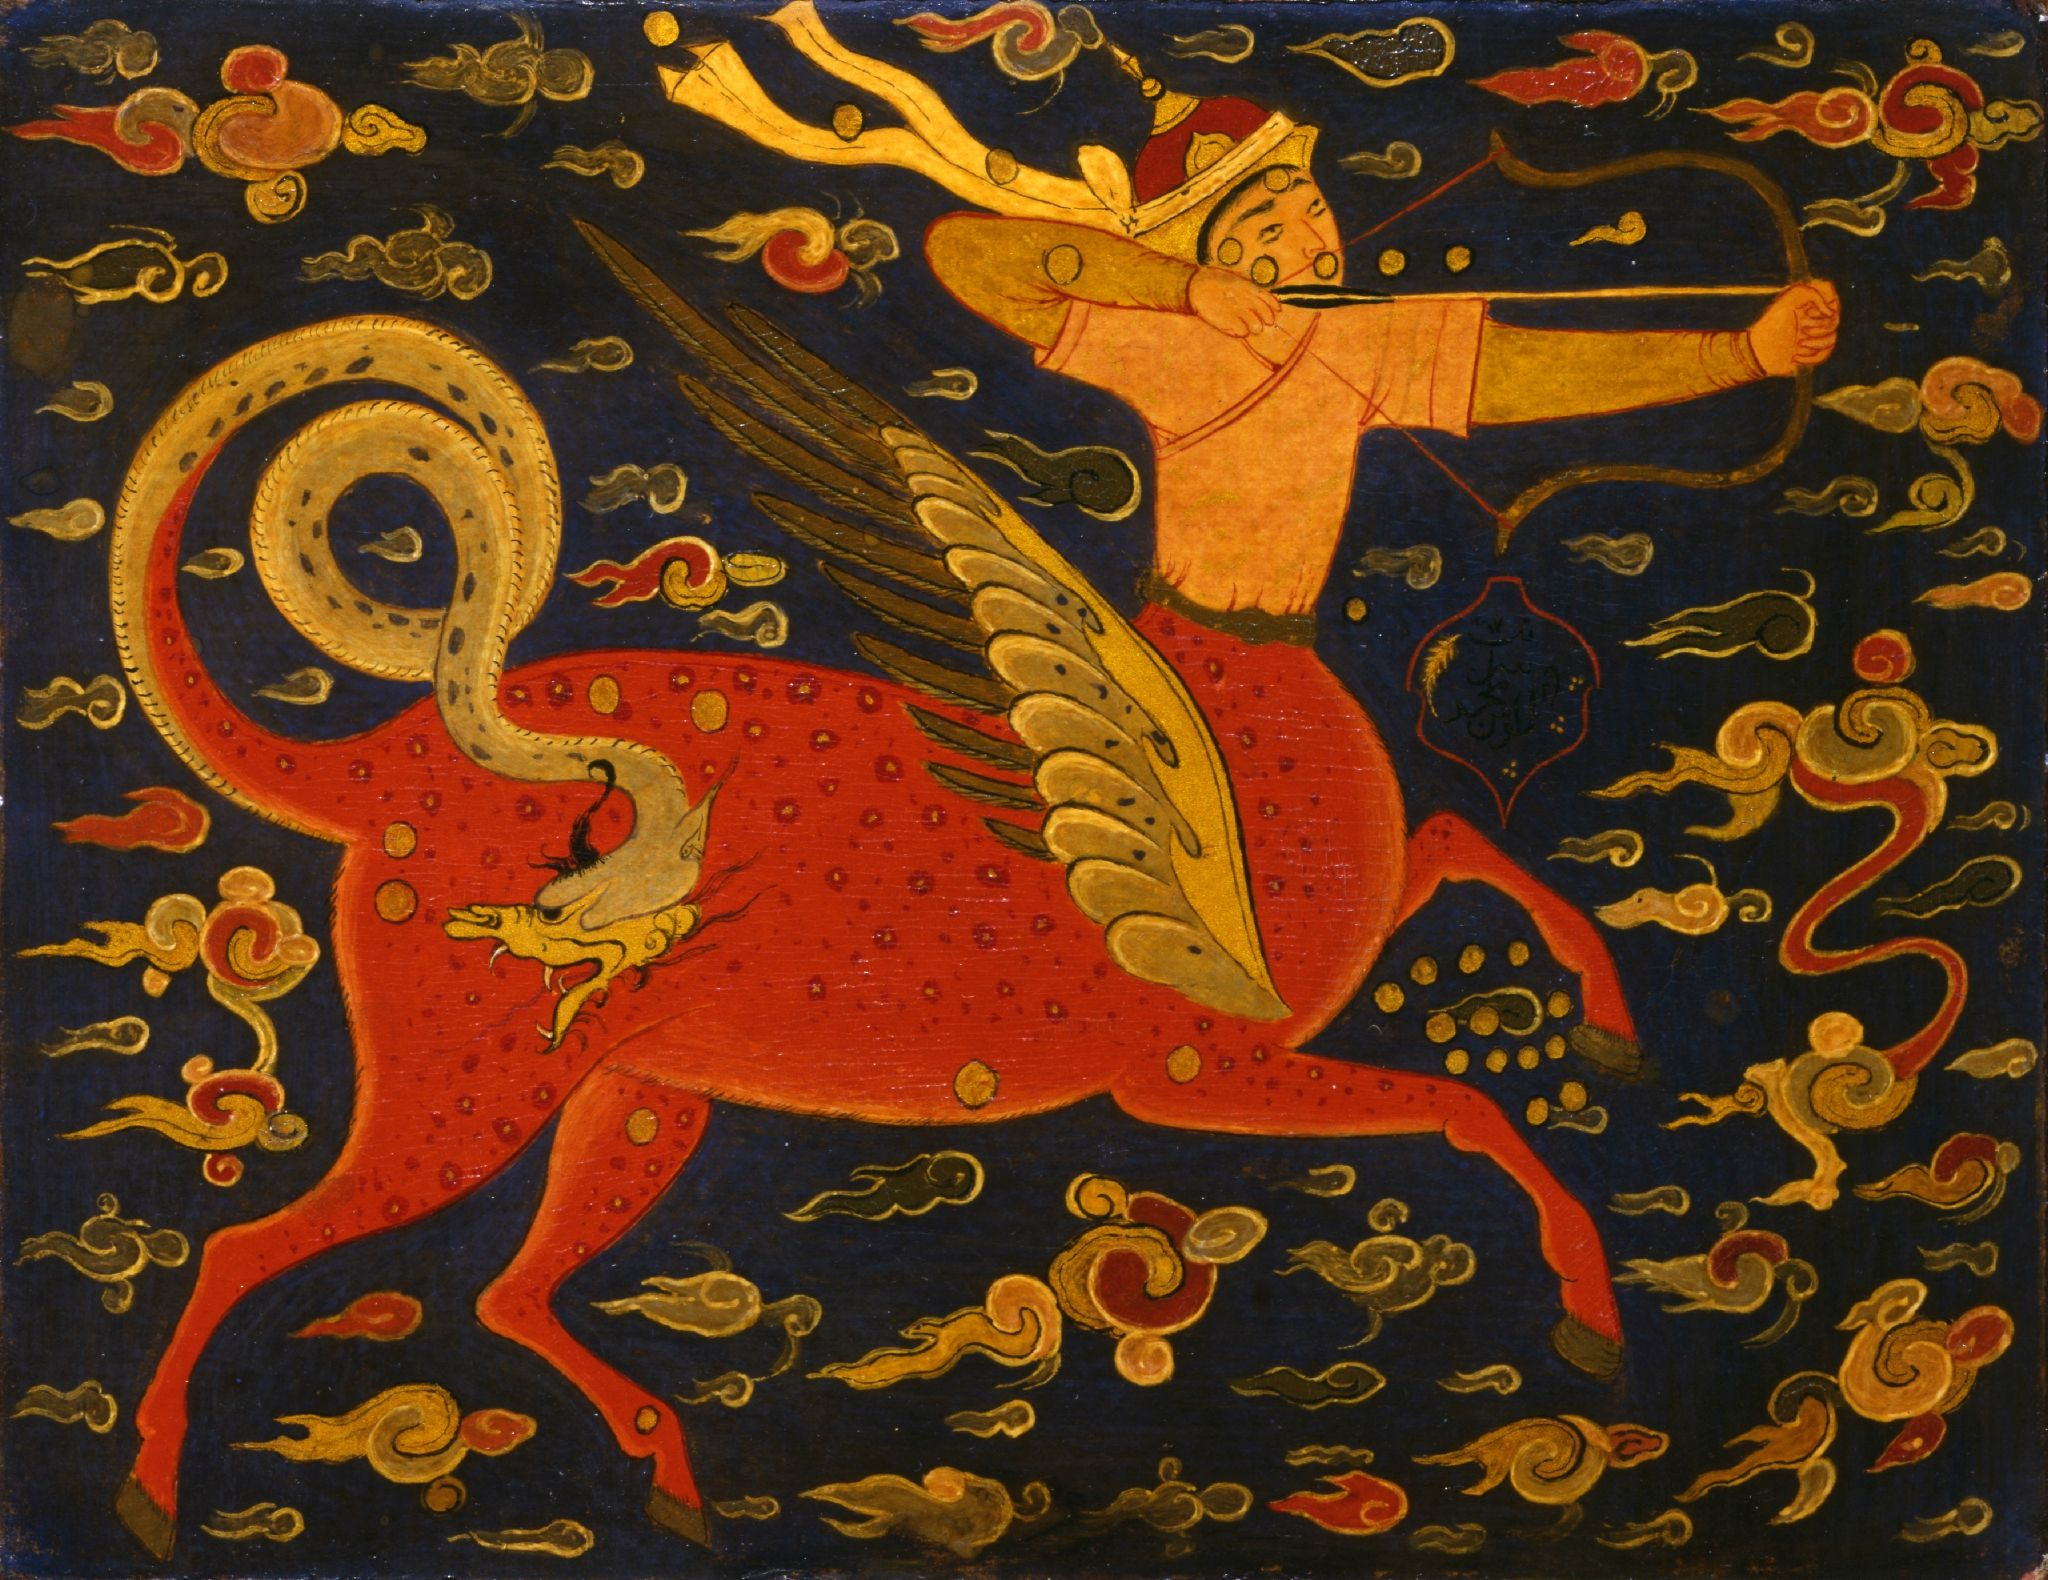 """Lacquer painting on cardboard with the constellation """"Sagittarius"""". Iran; 19th century. H: 13.5; W: 17.5 cm. Inv. no. 10c/1991. The David Collection © THE DAVID COLLECTION"""